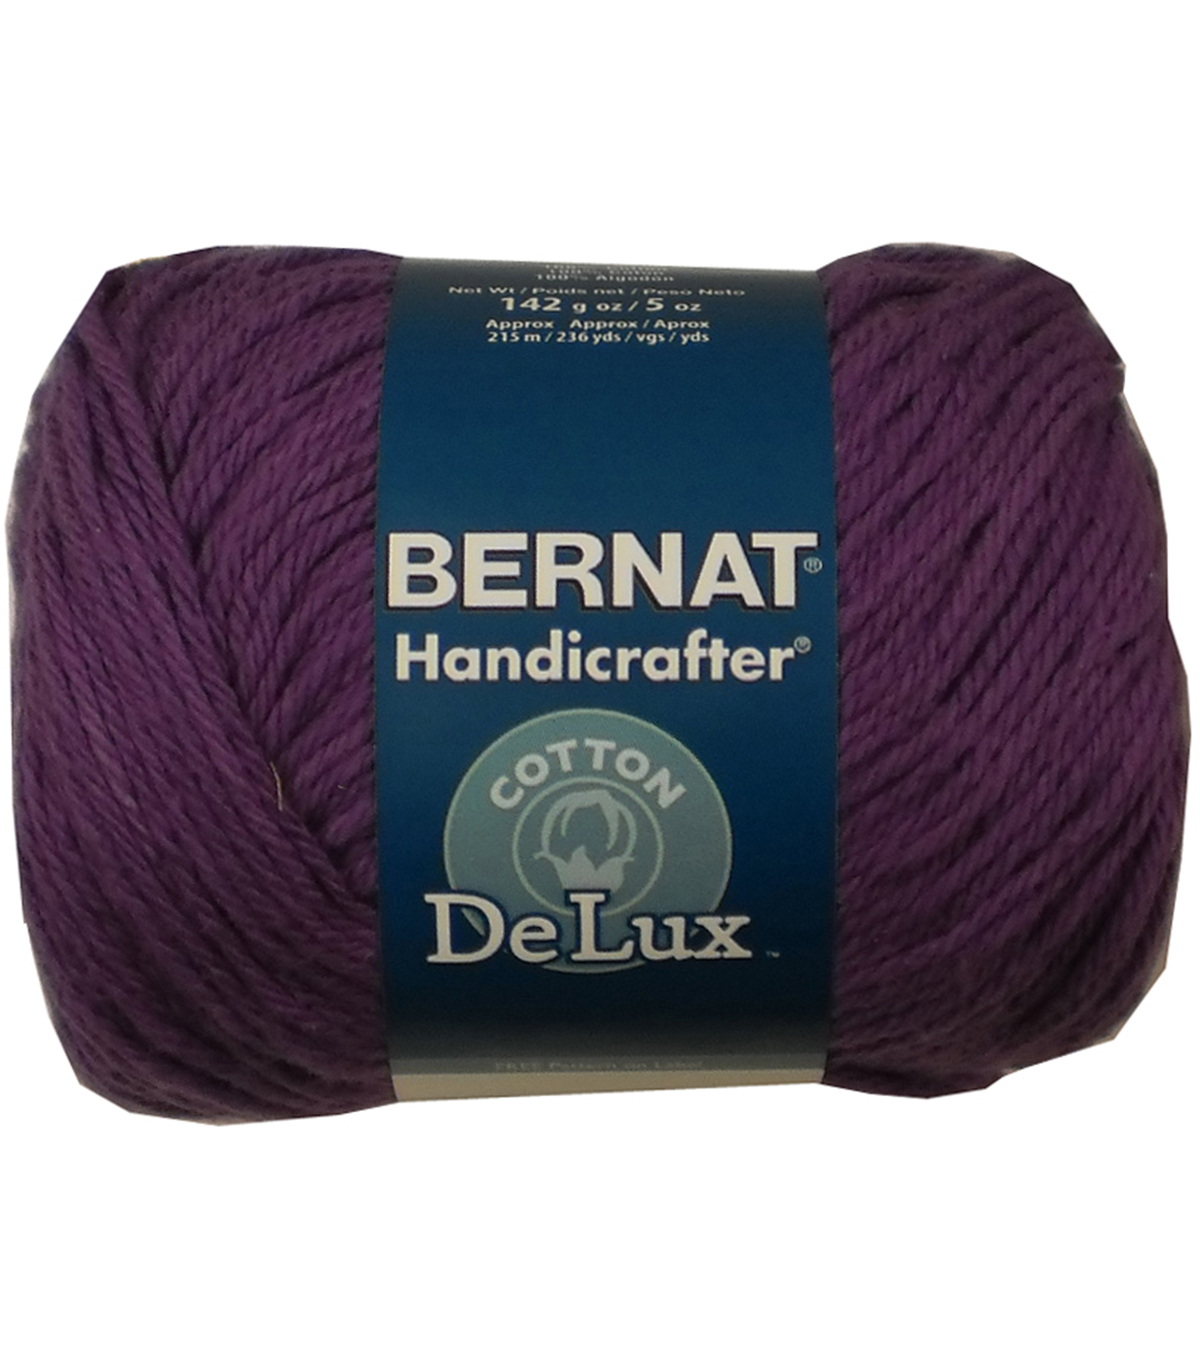 Bernat Handicrafter DeLux Cotton Yarn, Purple